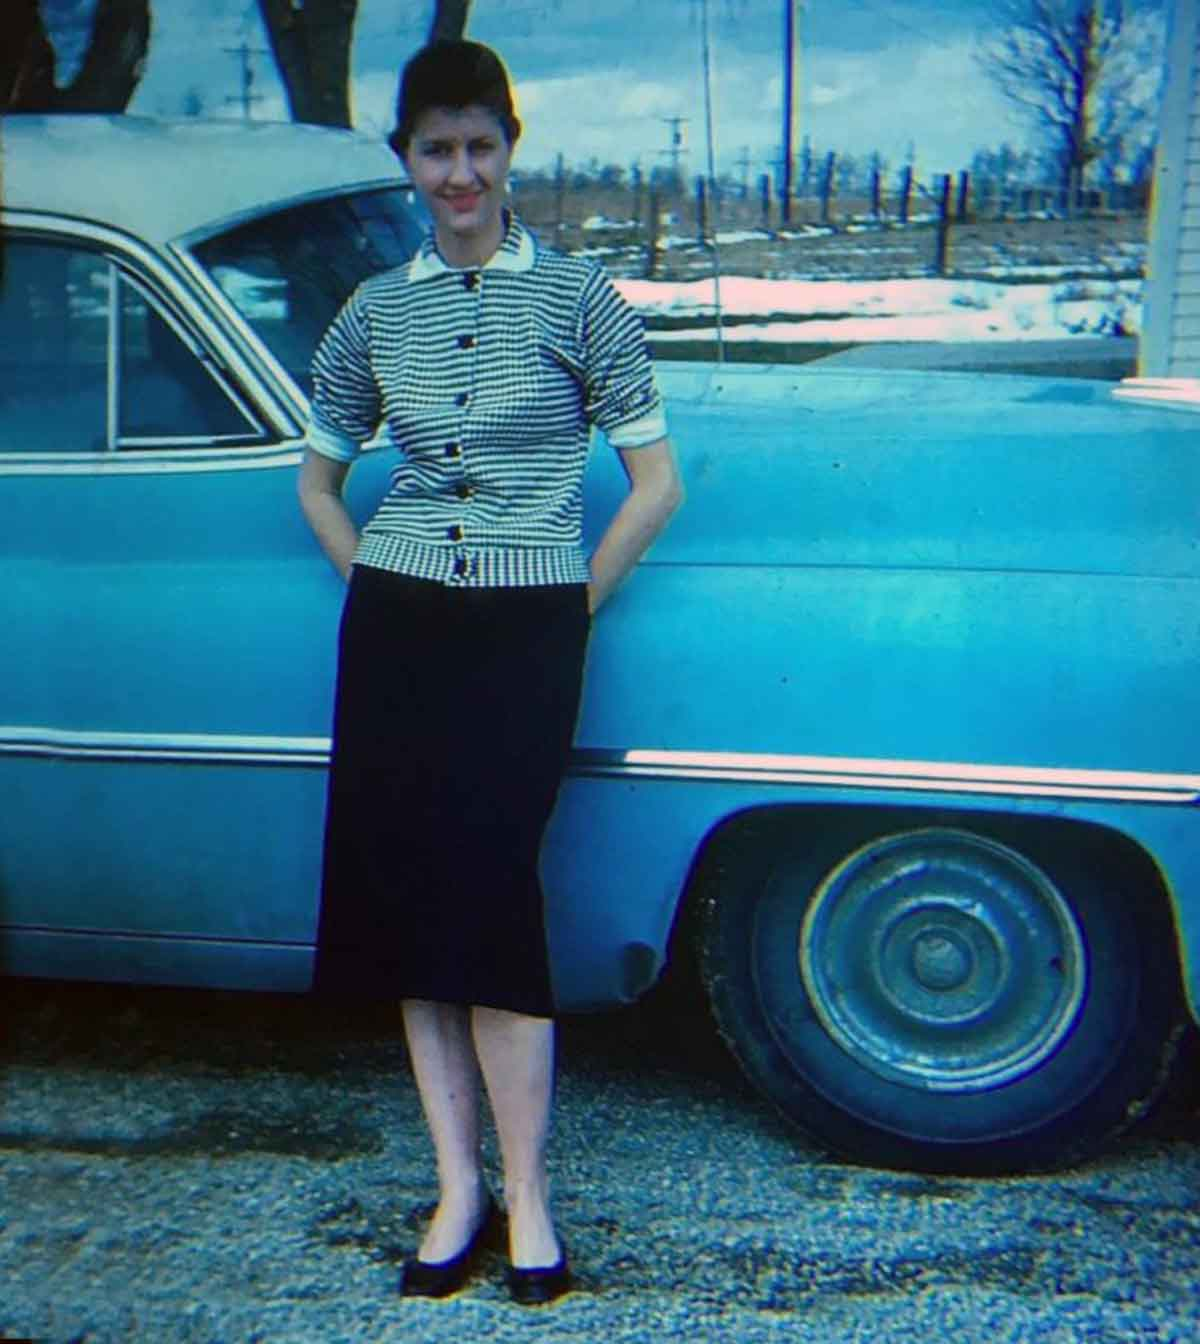 Straight-out-of-the-50-photos of Women in the 1950s